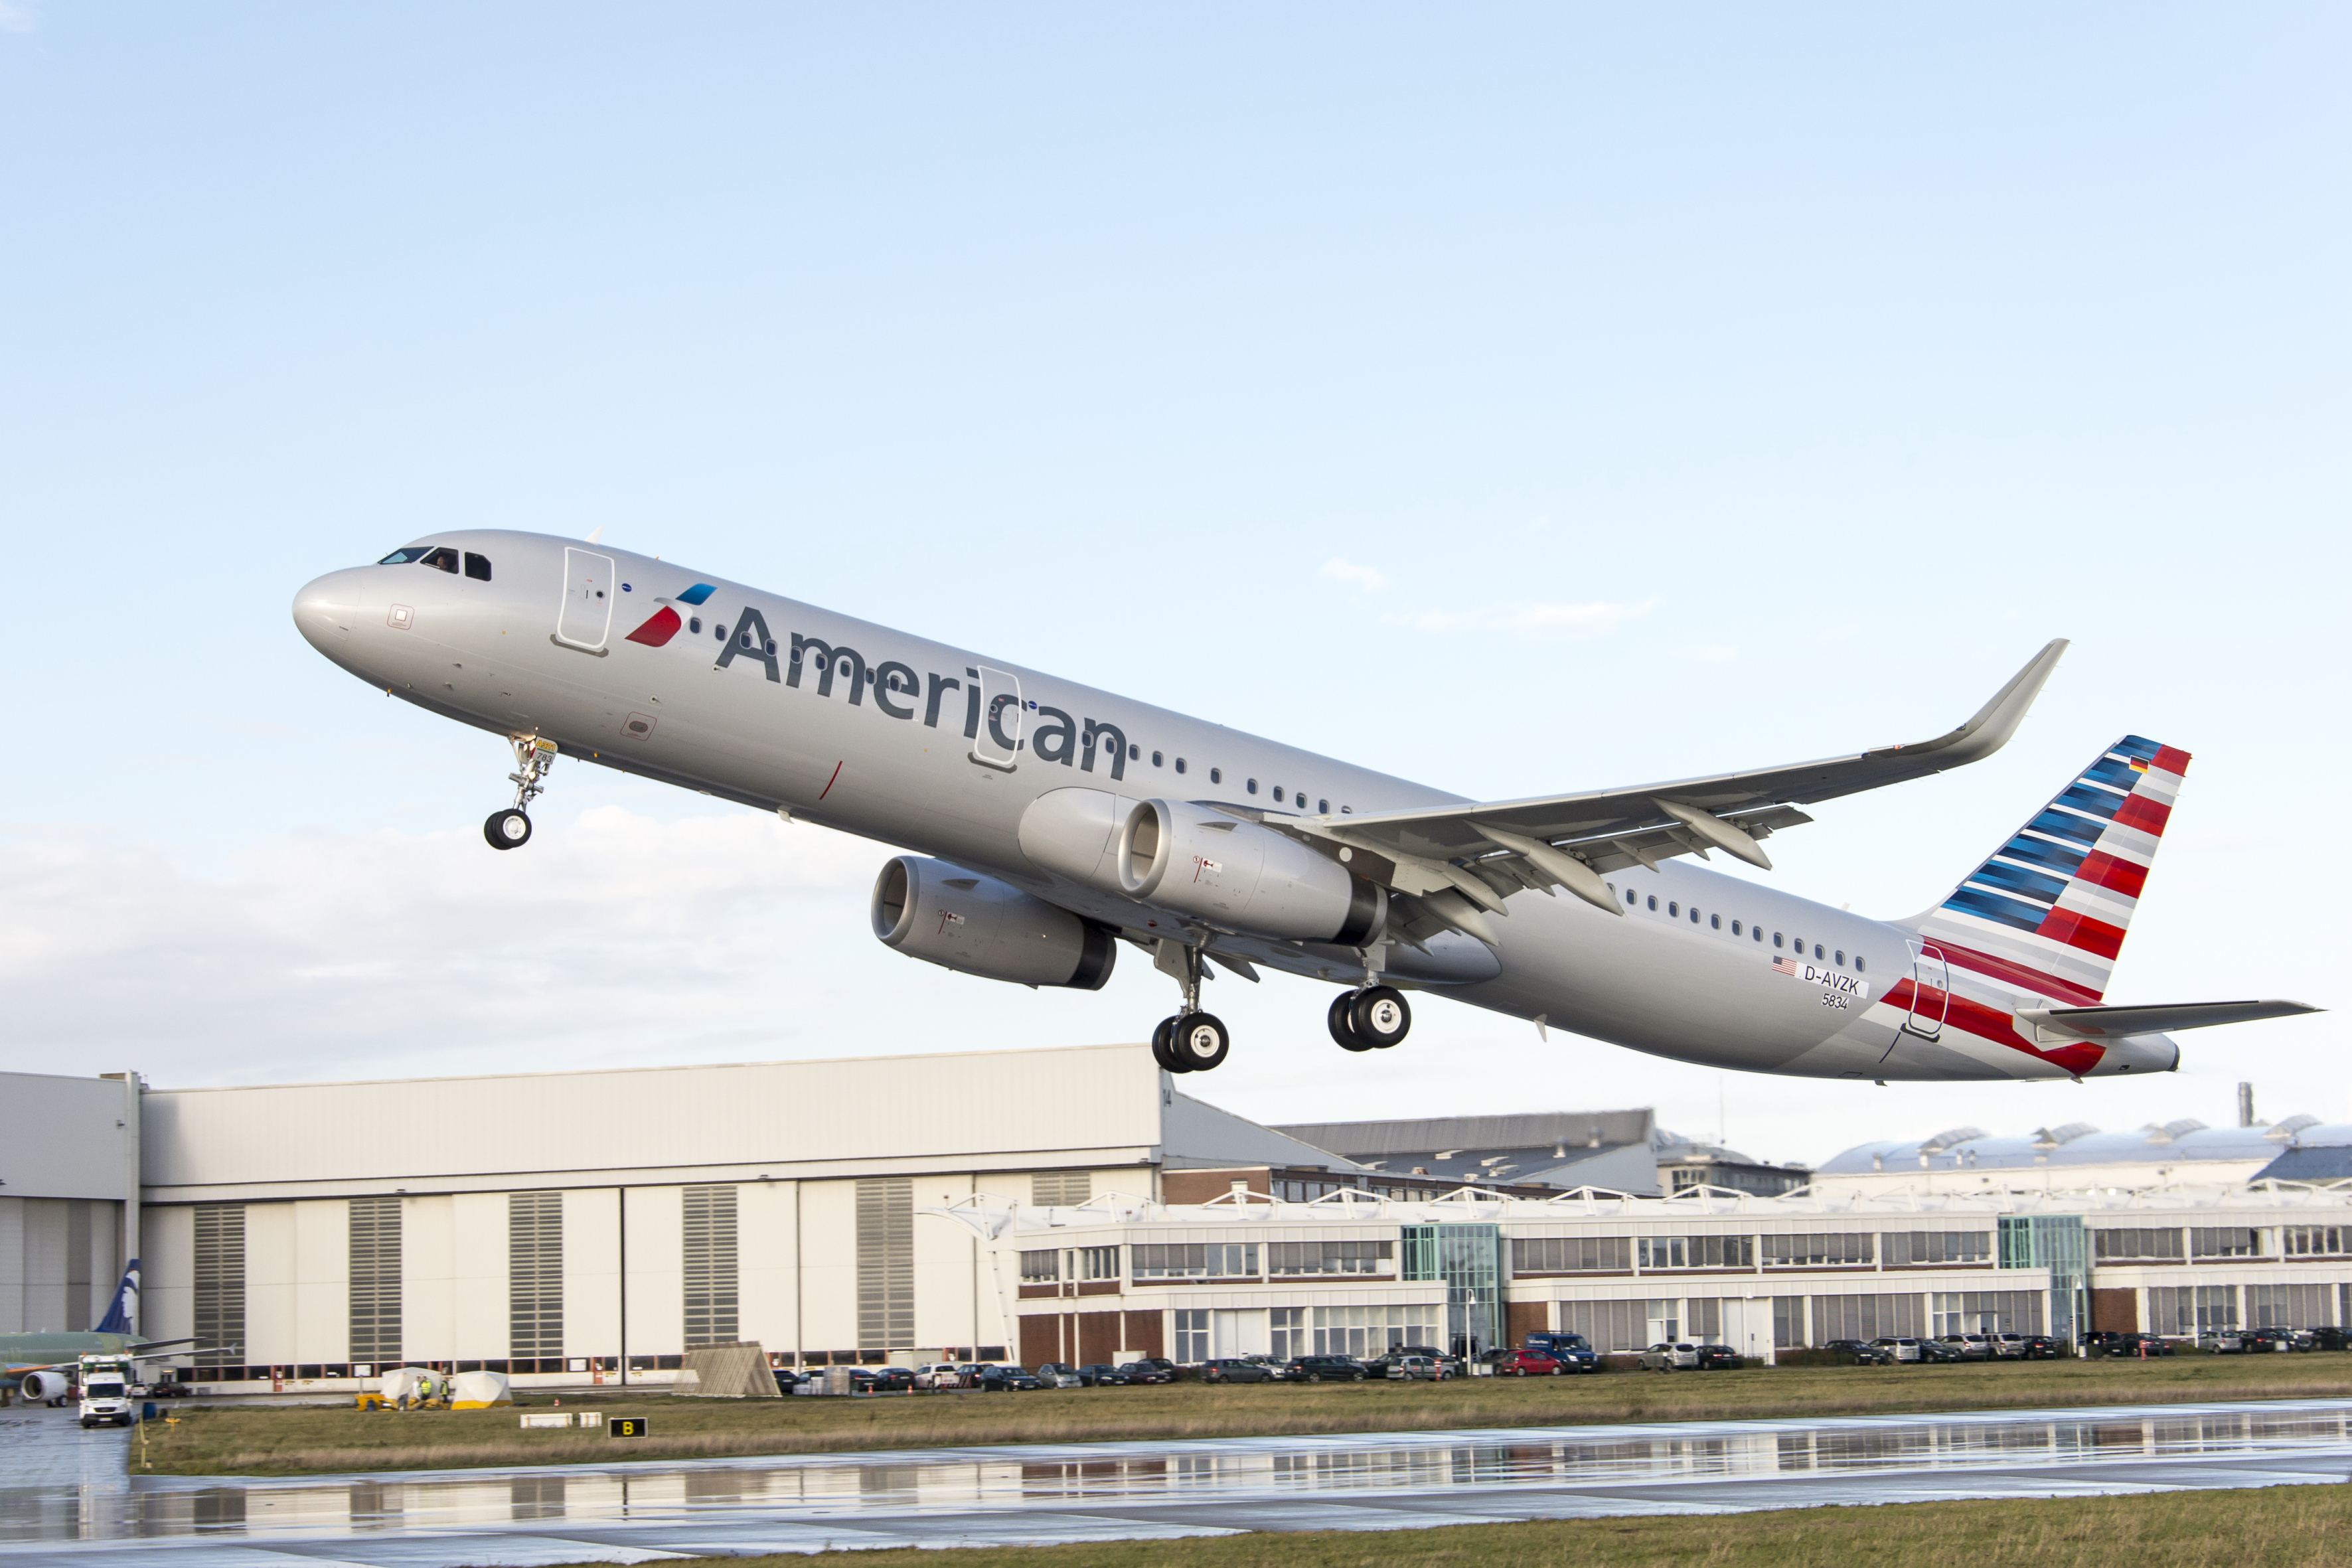 American Airlines Hd Wallpapers backgrounds Download   Elsetge 3543x2362